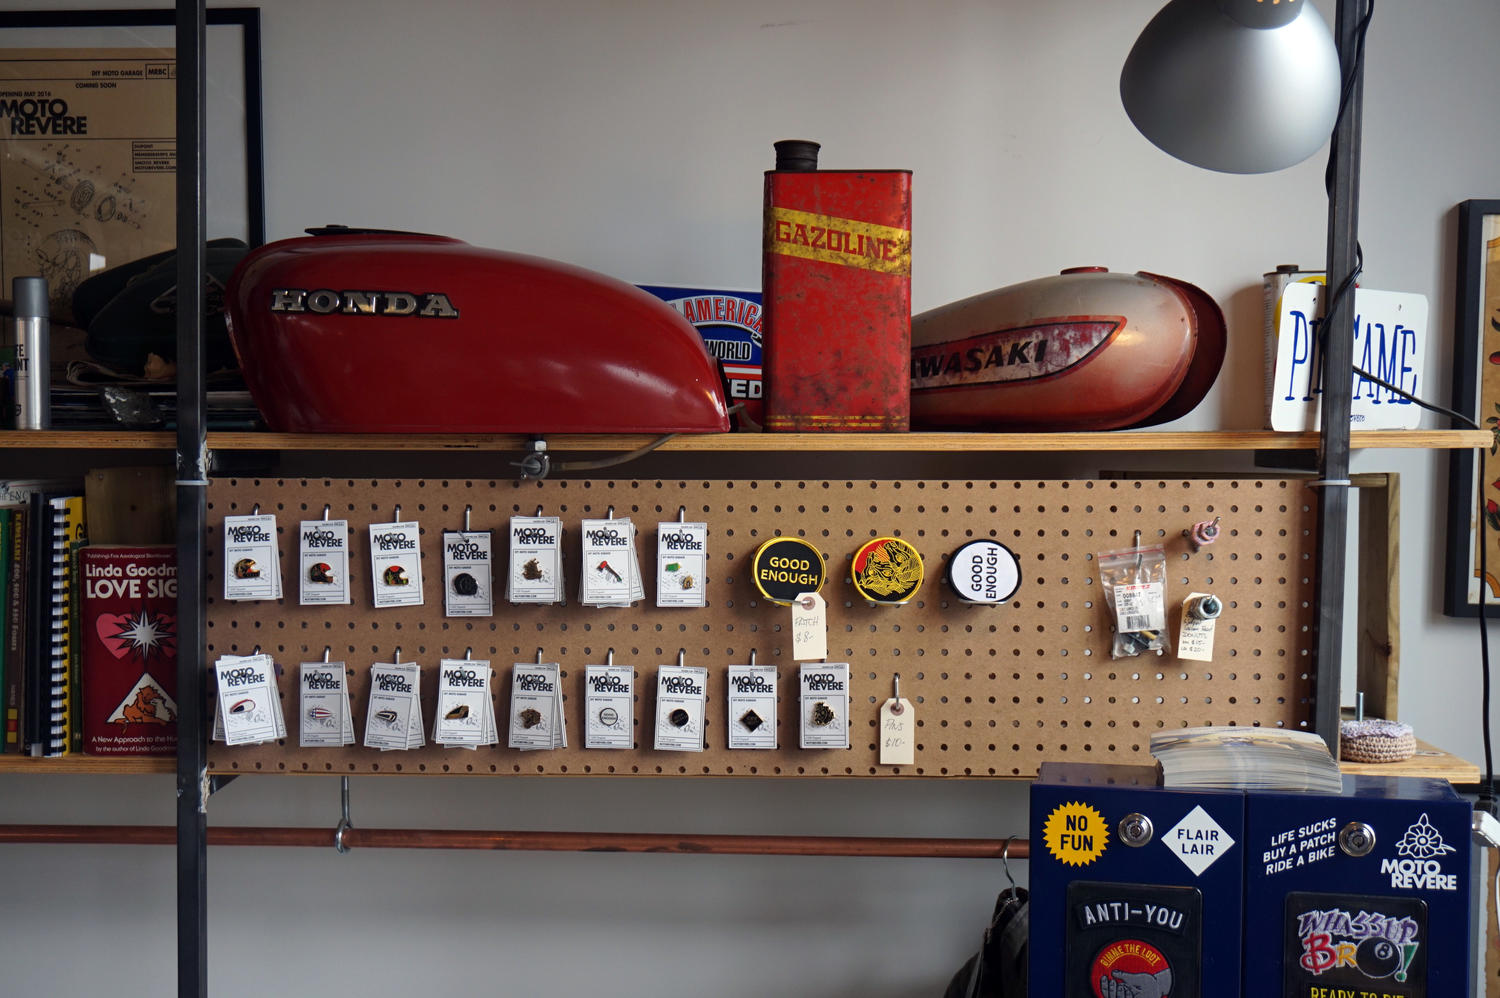 Moto revere diy motorcycle garage in toronto northern ontario travel personally doing the basics like tightening a chain and changing oil replacing spark plugs or taking a wheel off can be done anywhere solutioingenieria Image collections